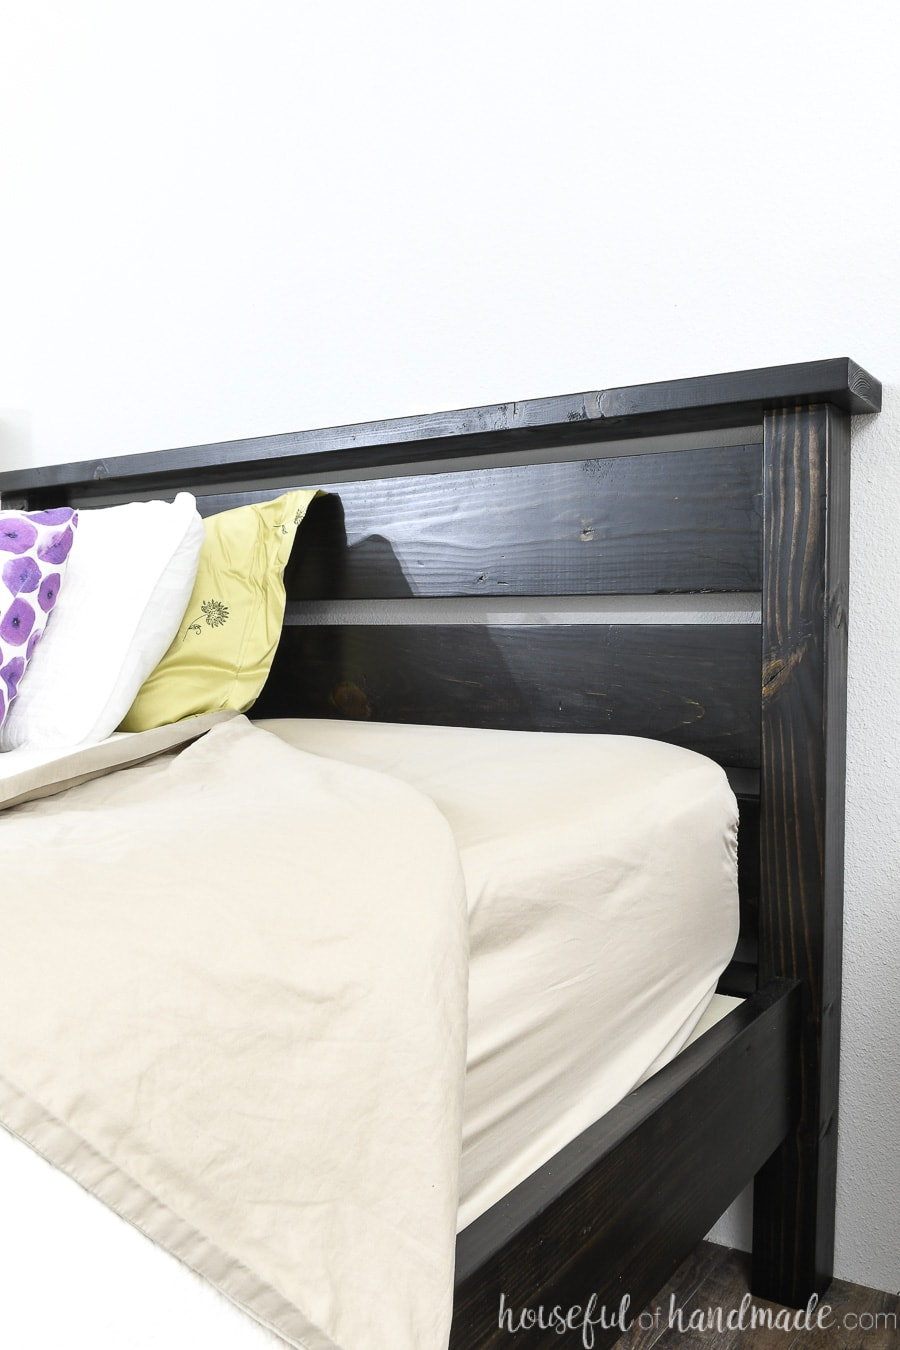 Close up view of the black stained headboard with pillows moved back from the headboard.